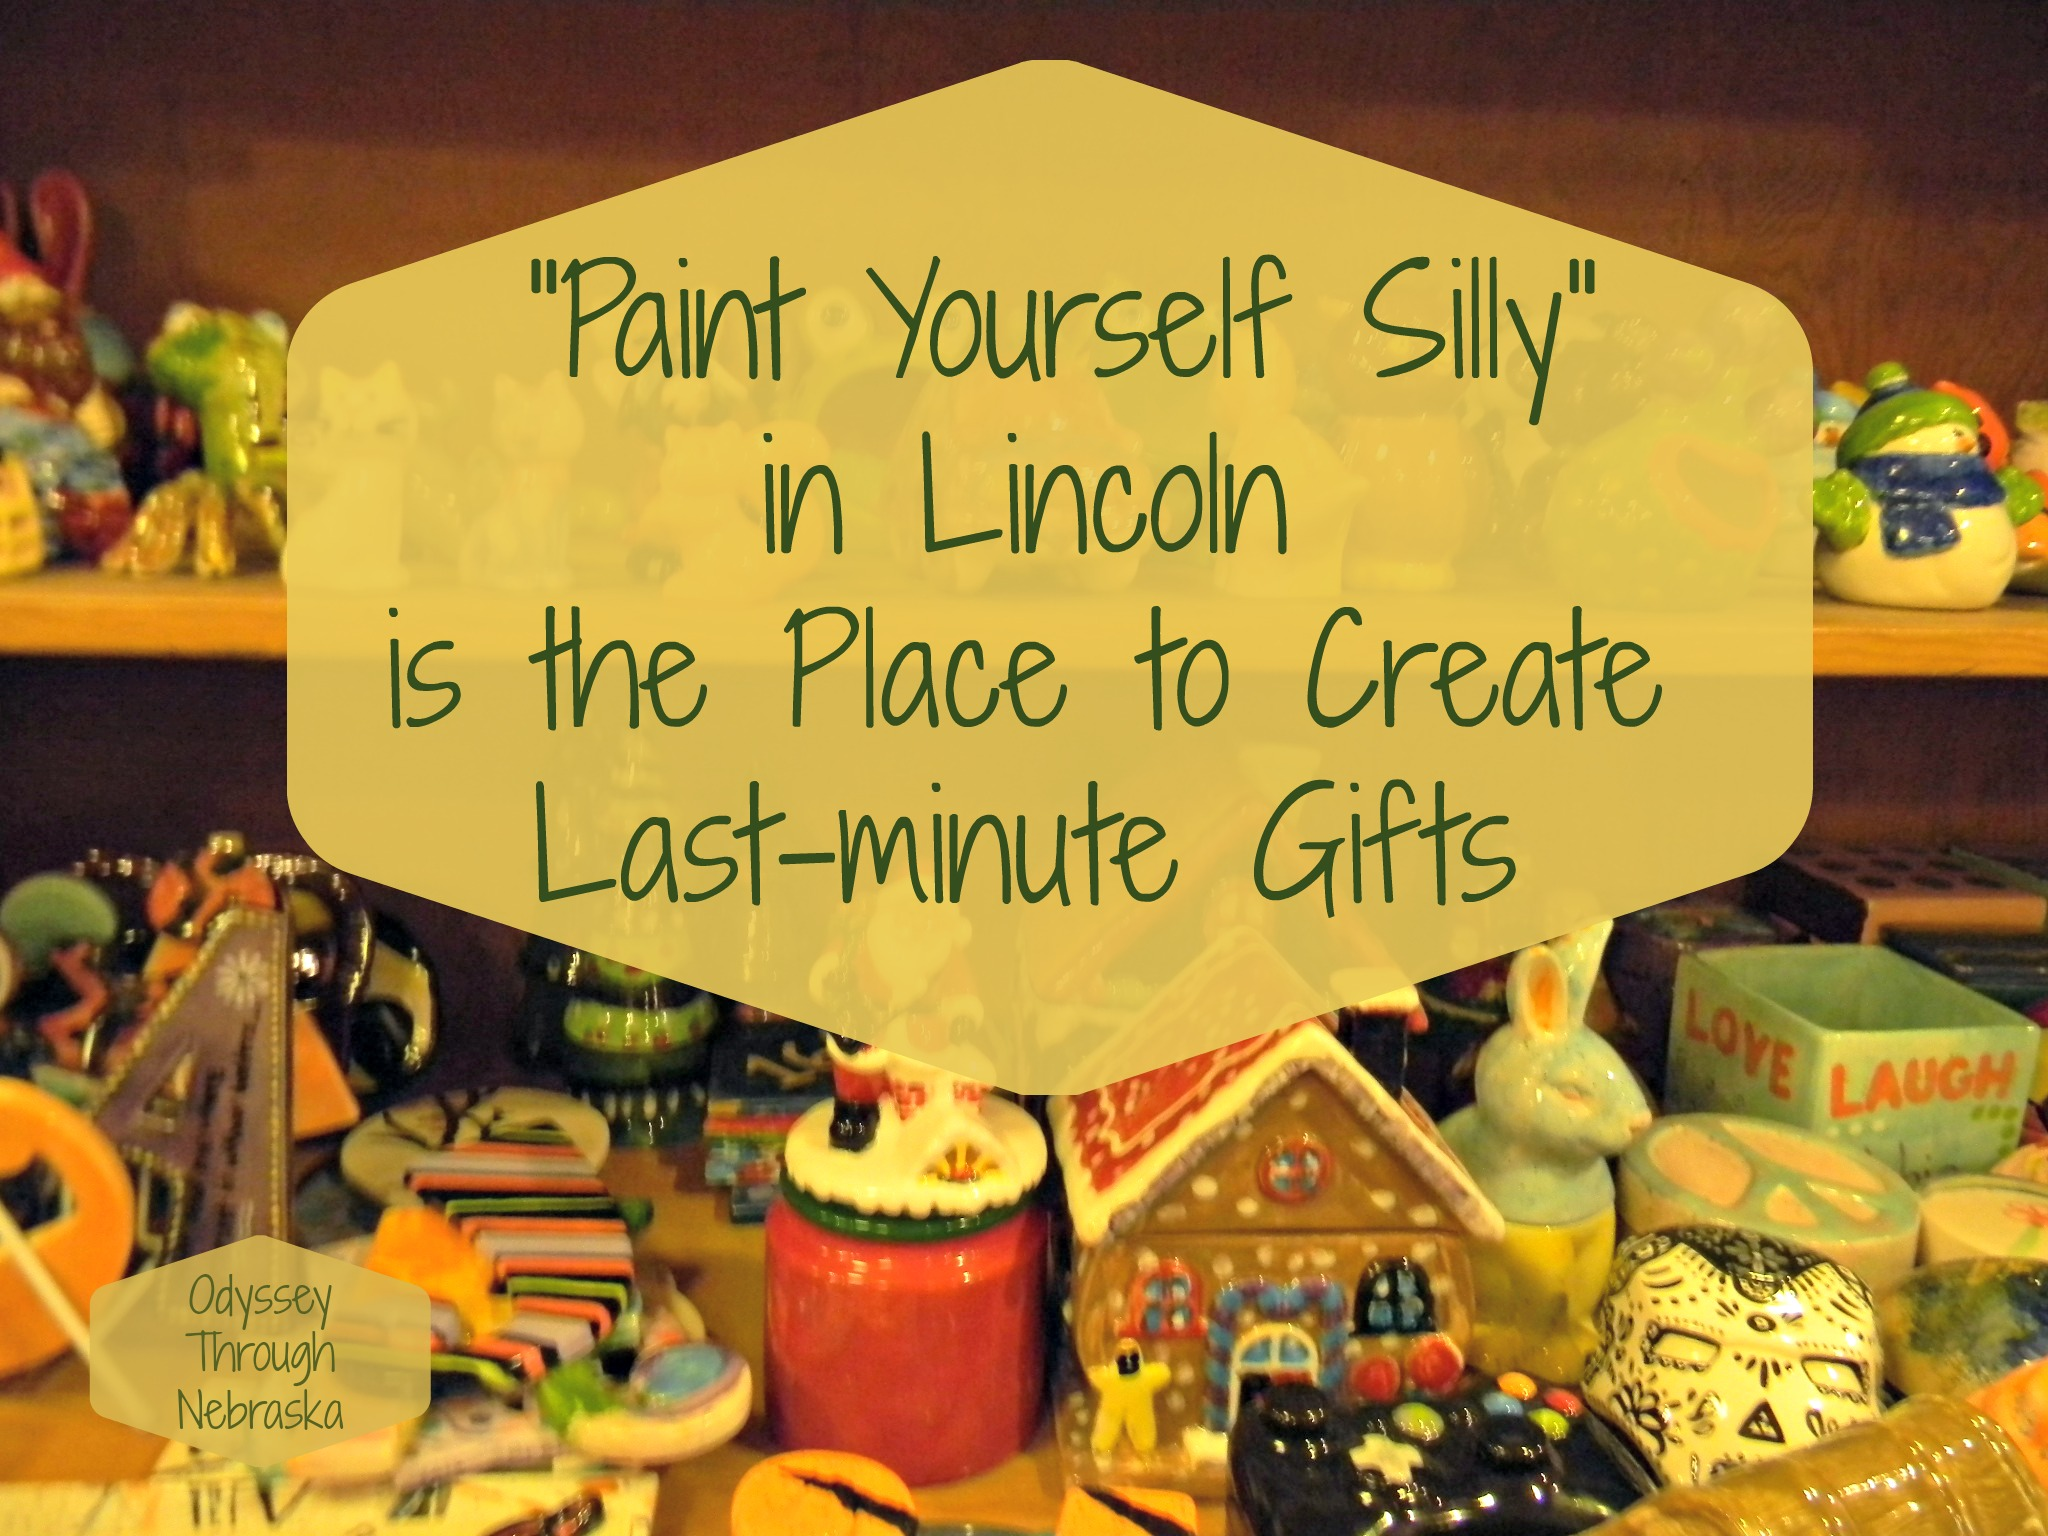 Paint Yourself Silly in Lincoln has many gift possibilities